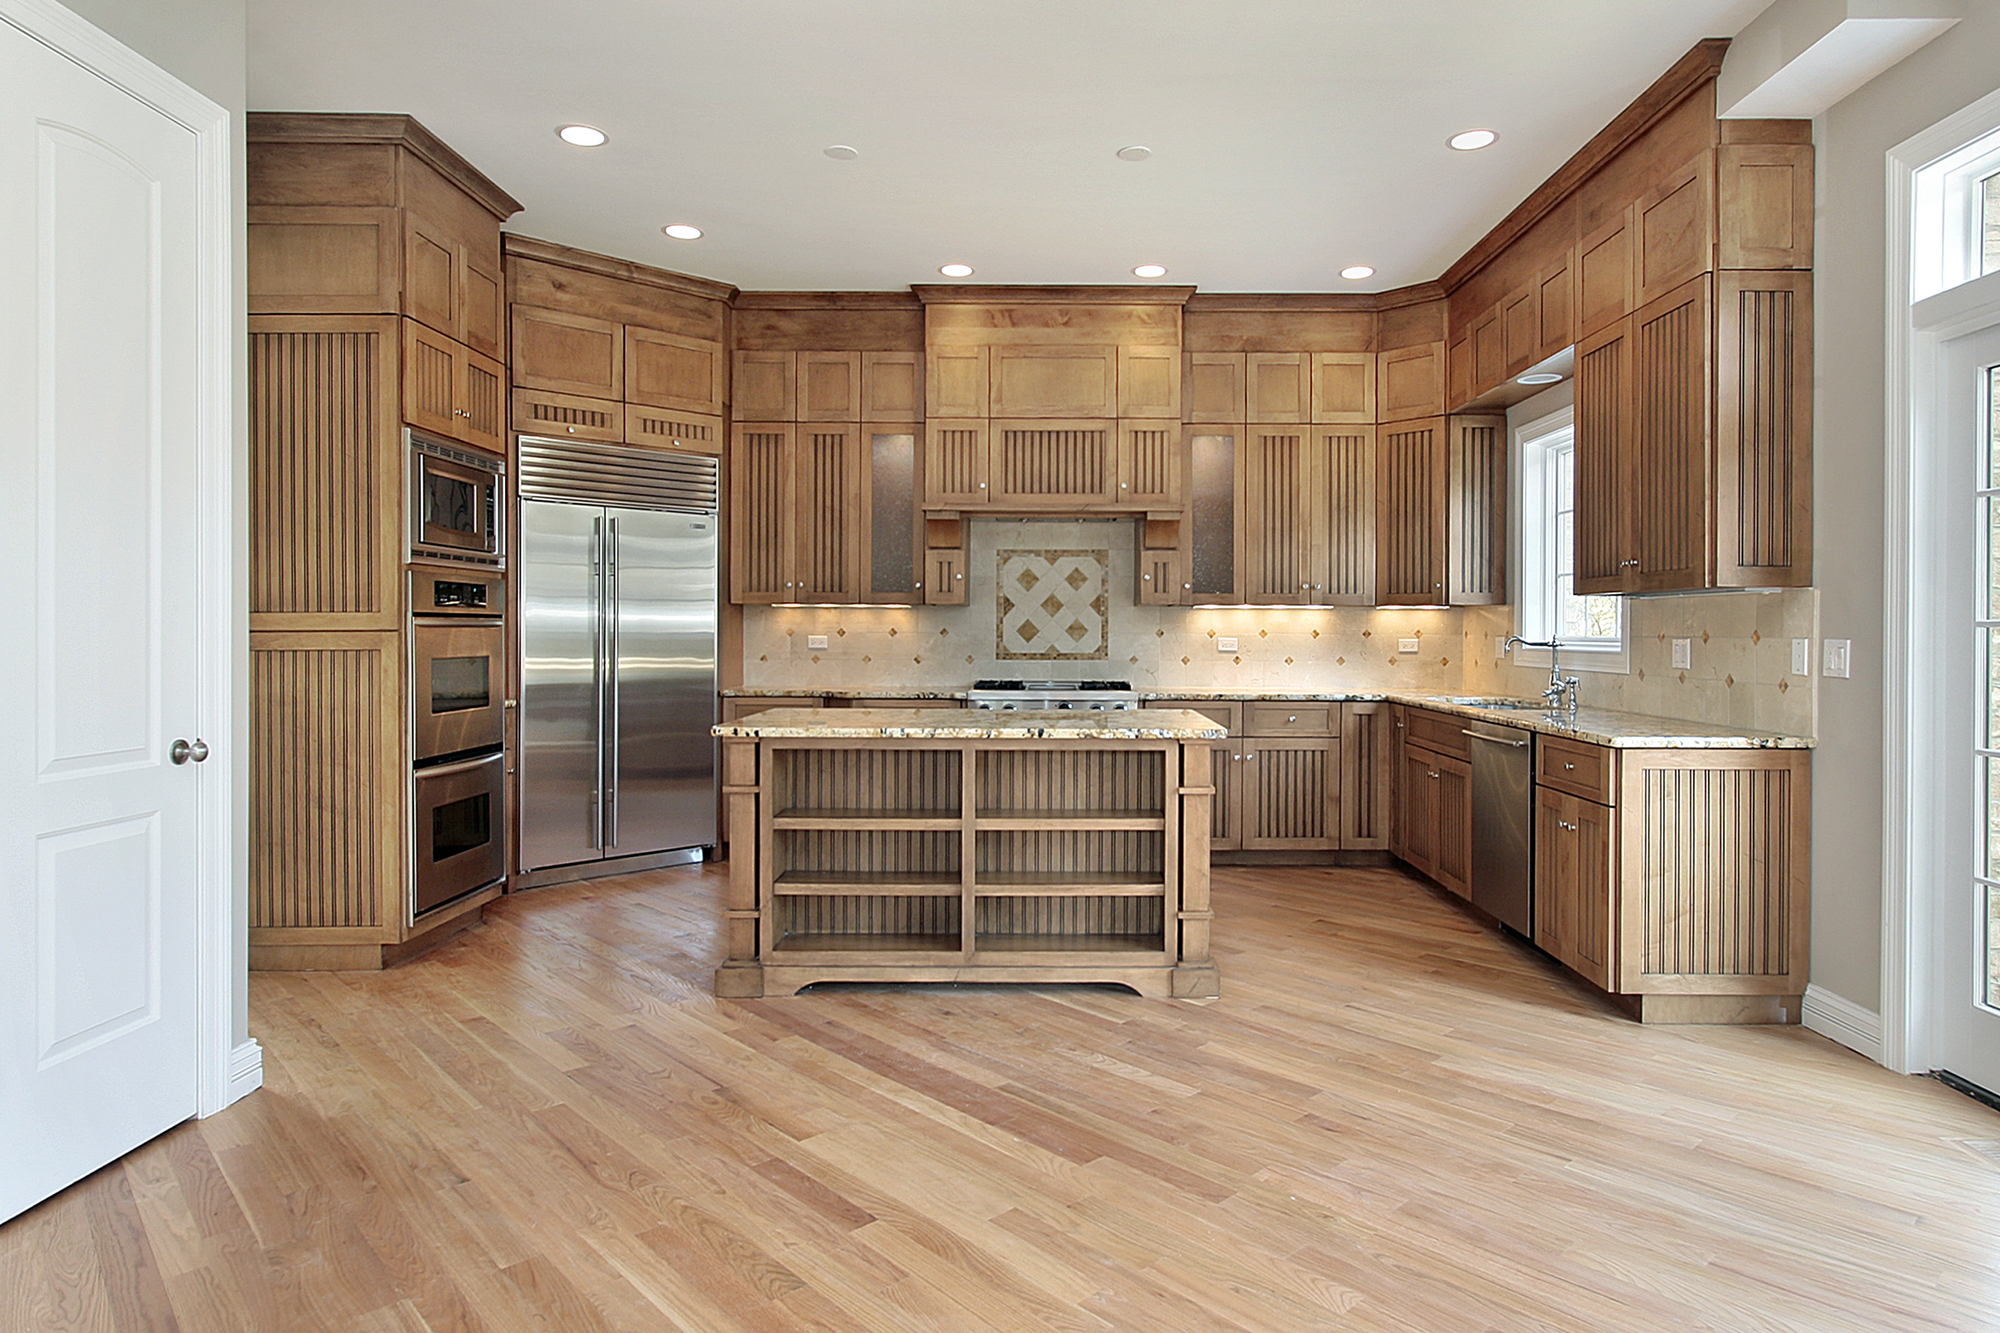 beautiful-kitchen.jpg